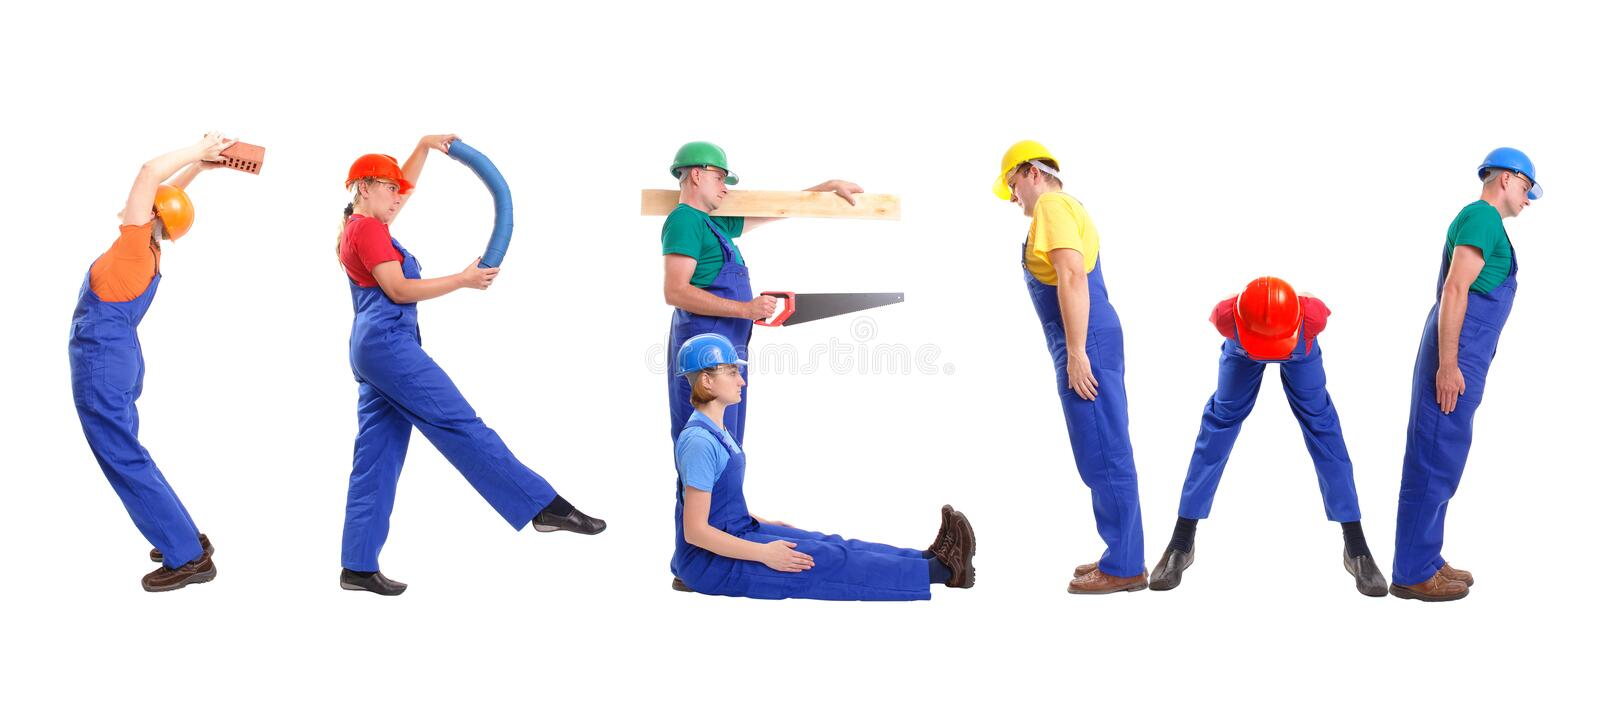 Construction crew royalty free stock images